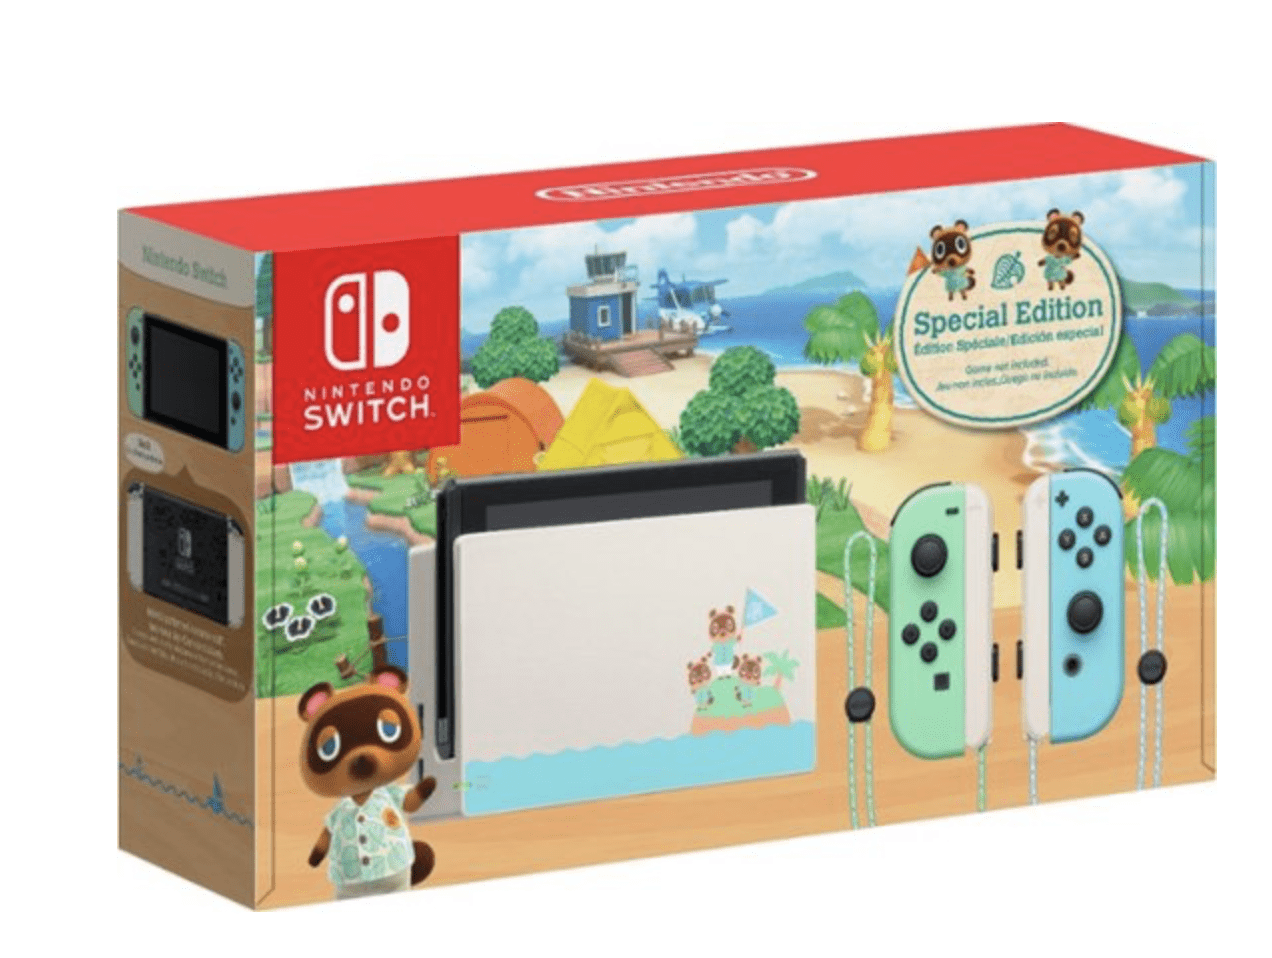 Nintendo Switch Console New Horizons Edition for 9.99